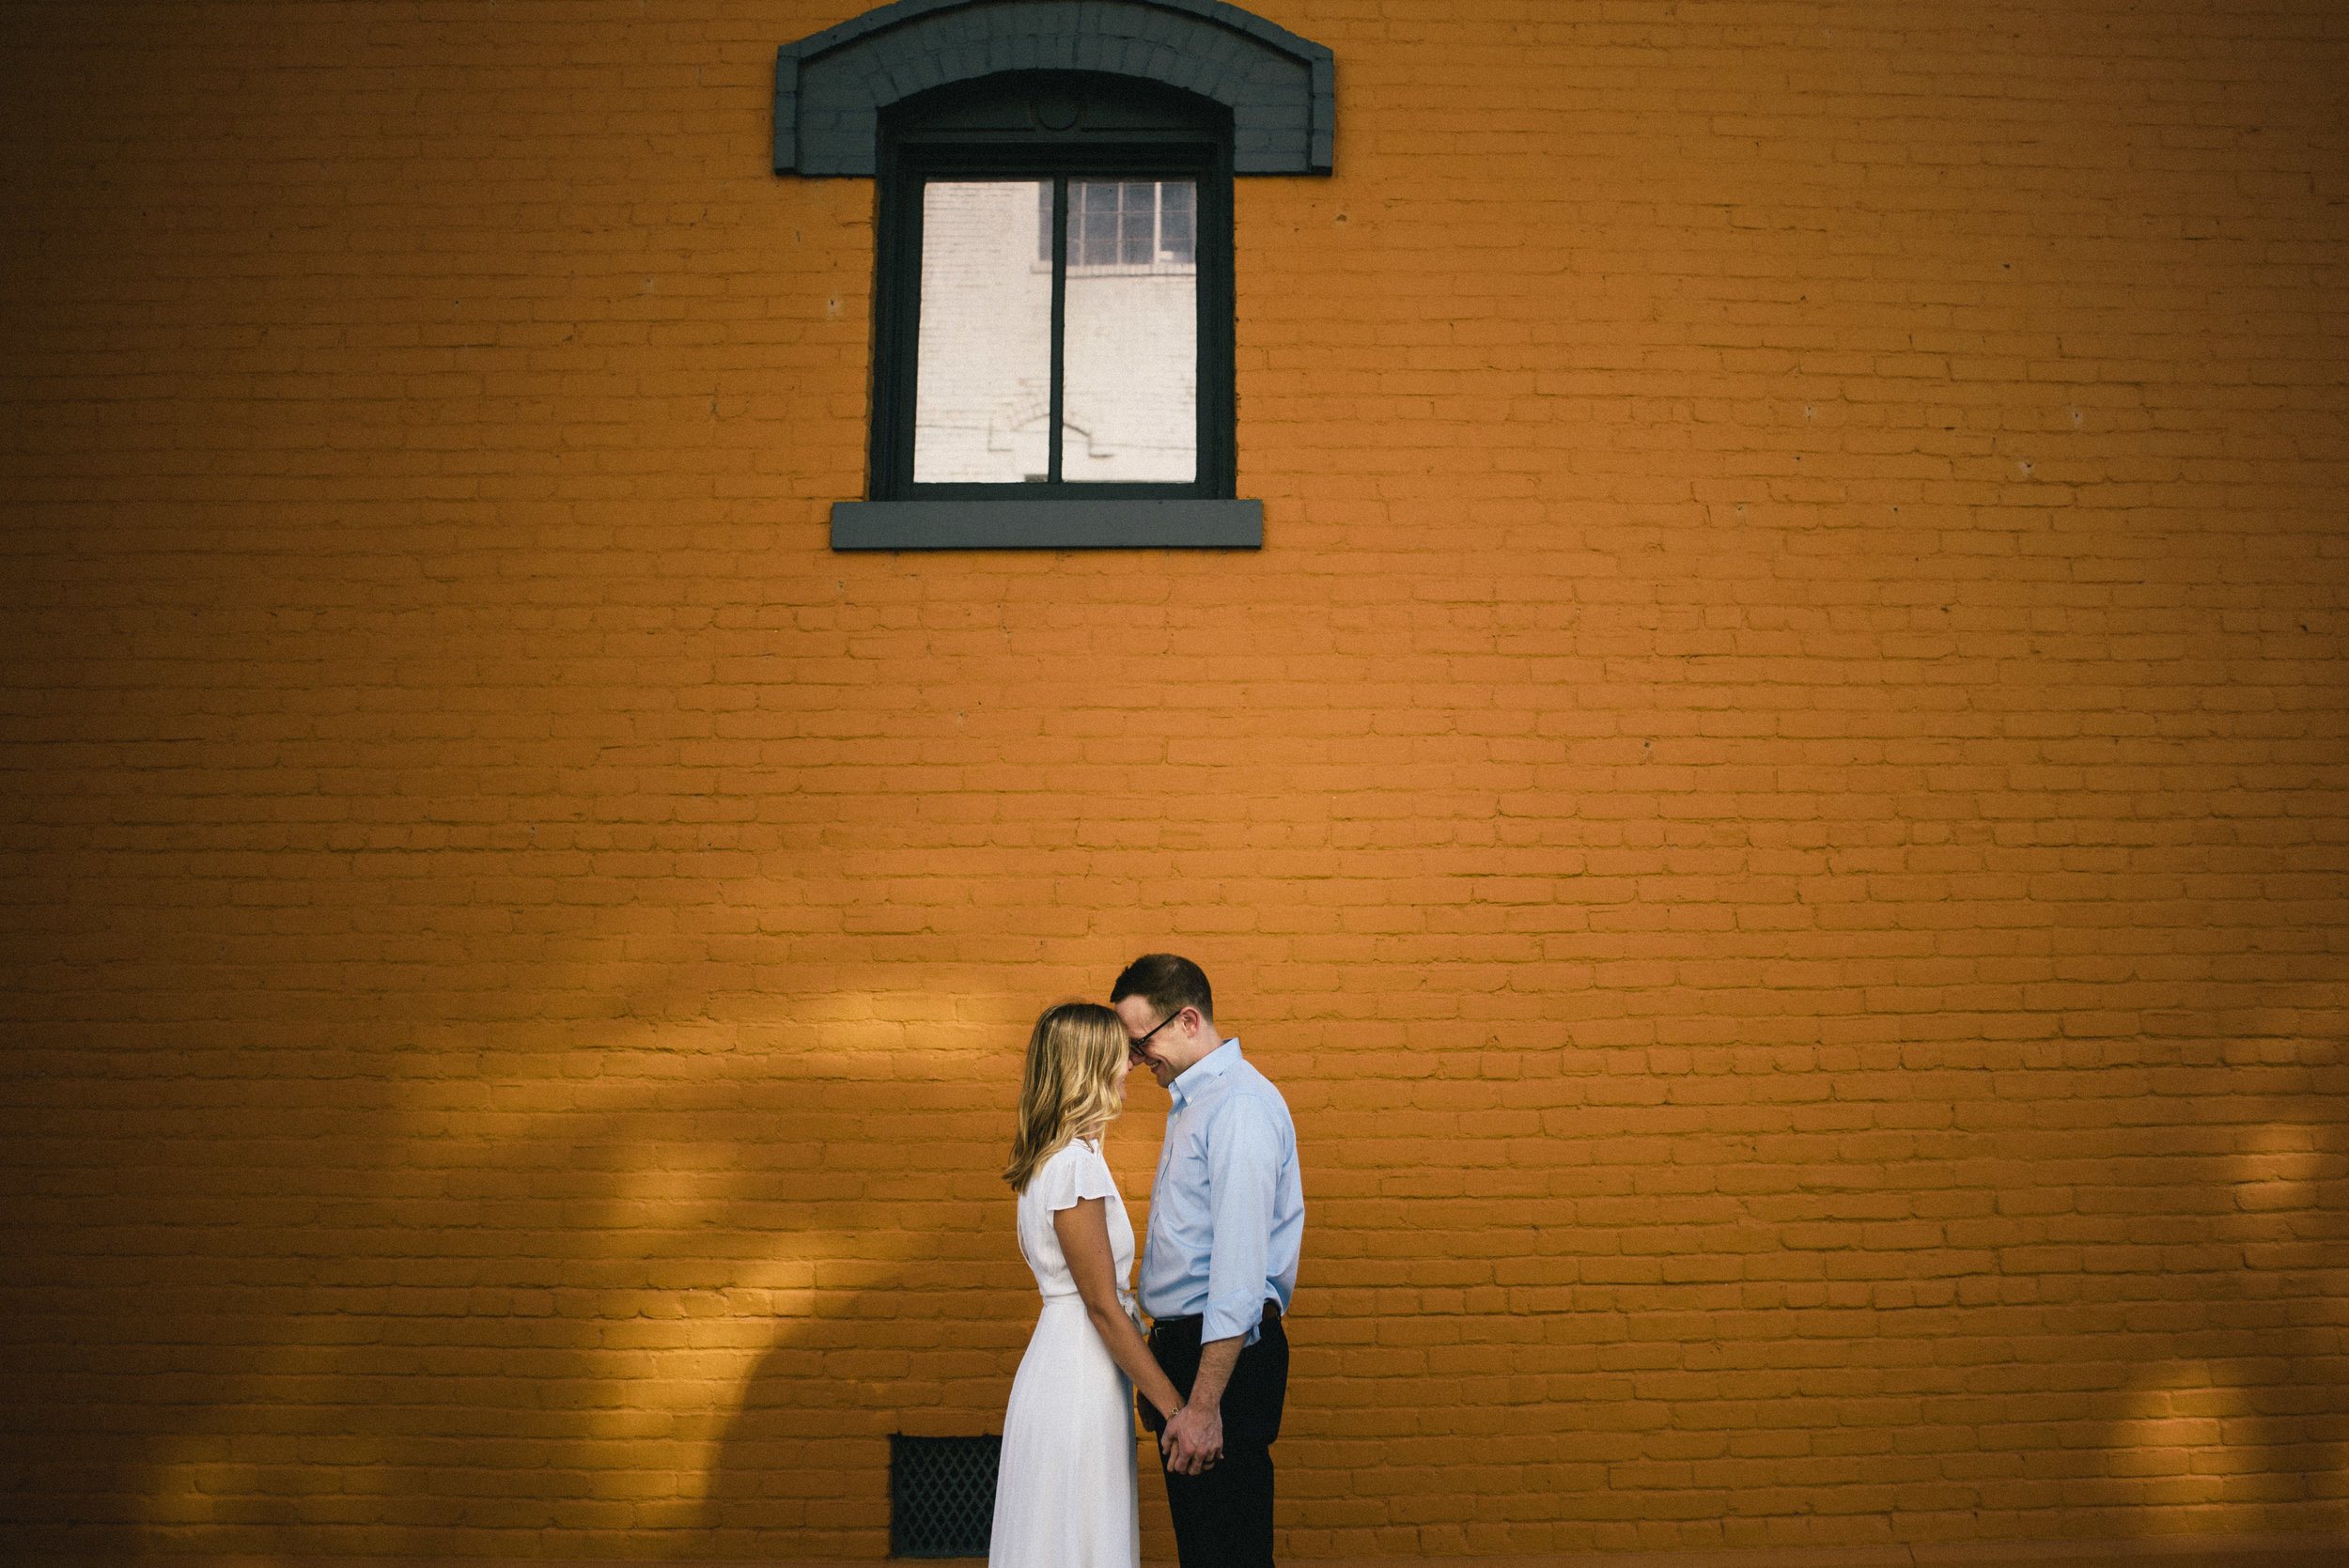 taryn-and-jackson-engagement-save-the-date (42 of 219).jpg